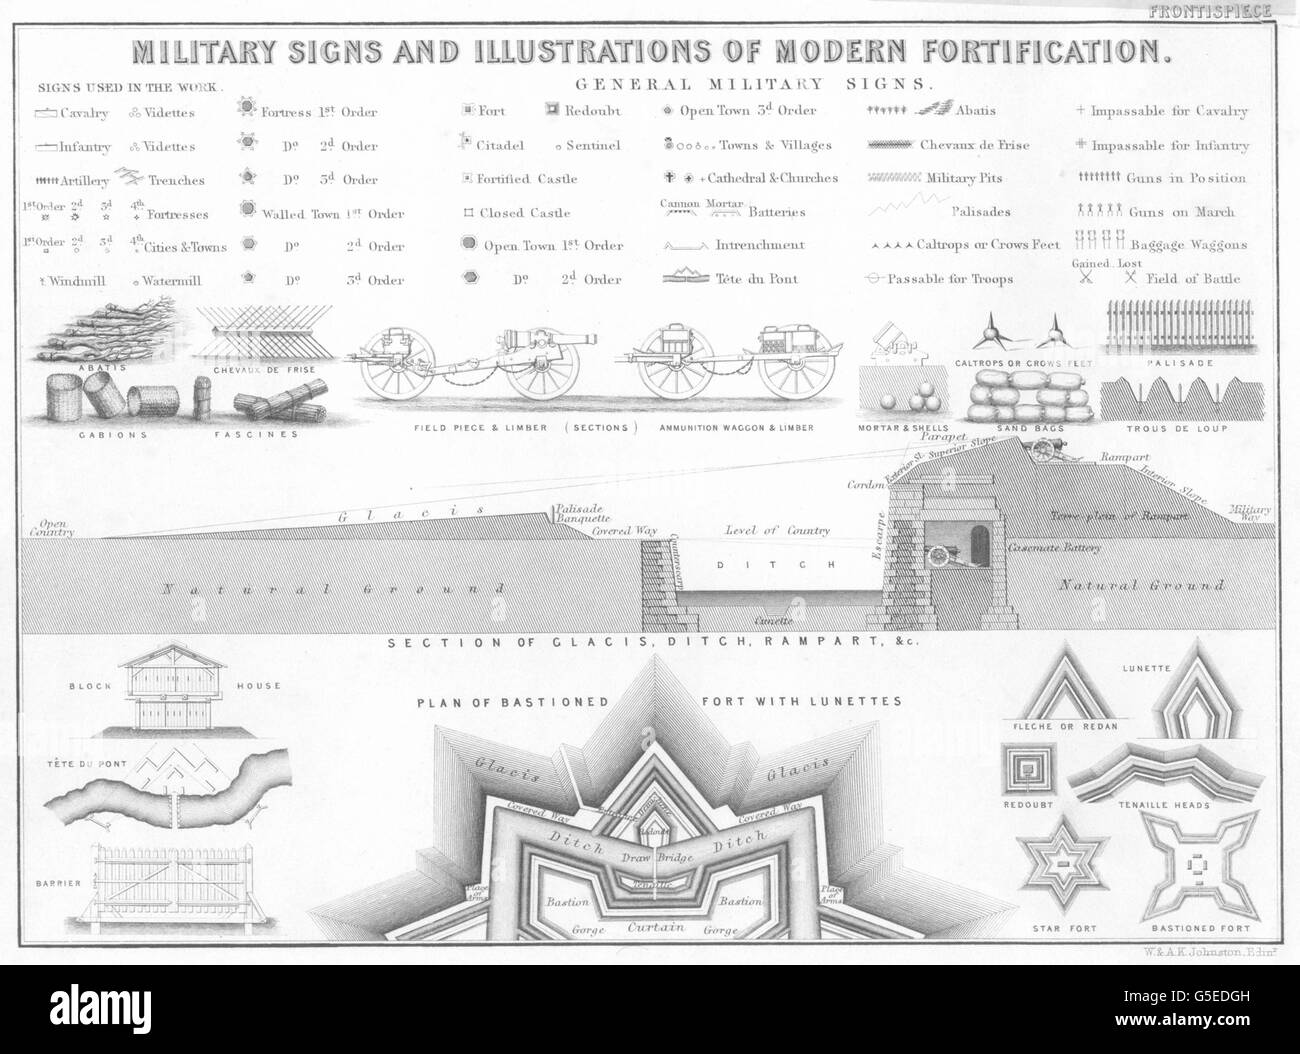 MILITARIA: Military Signs and Illustrations of Modern Fortification, 1848 - Stock Image